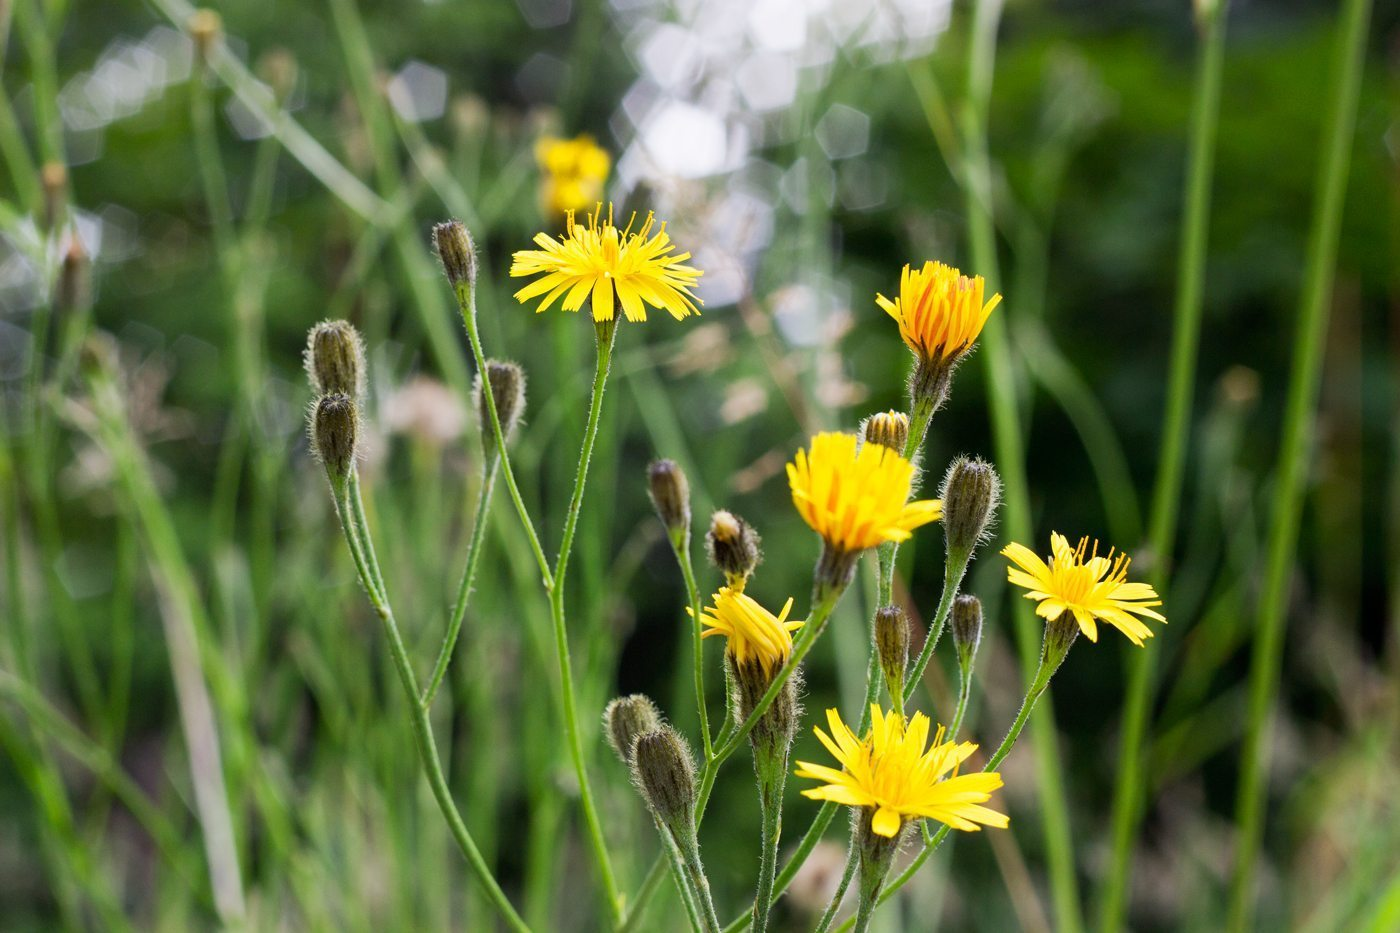 dandelion - medicinal plants in the wild